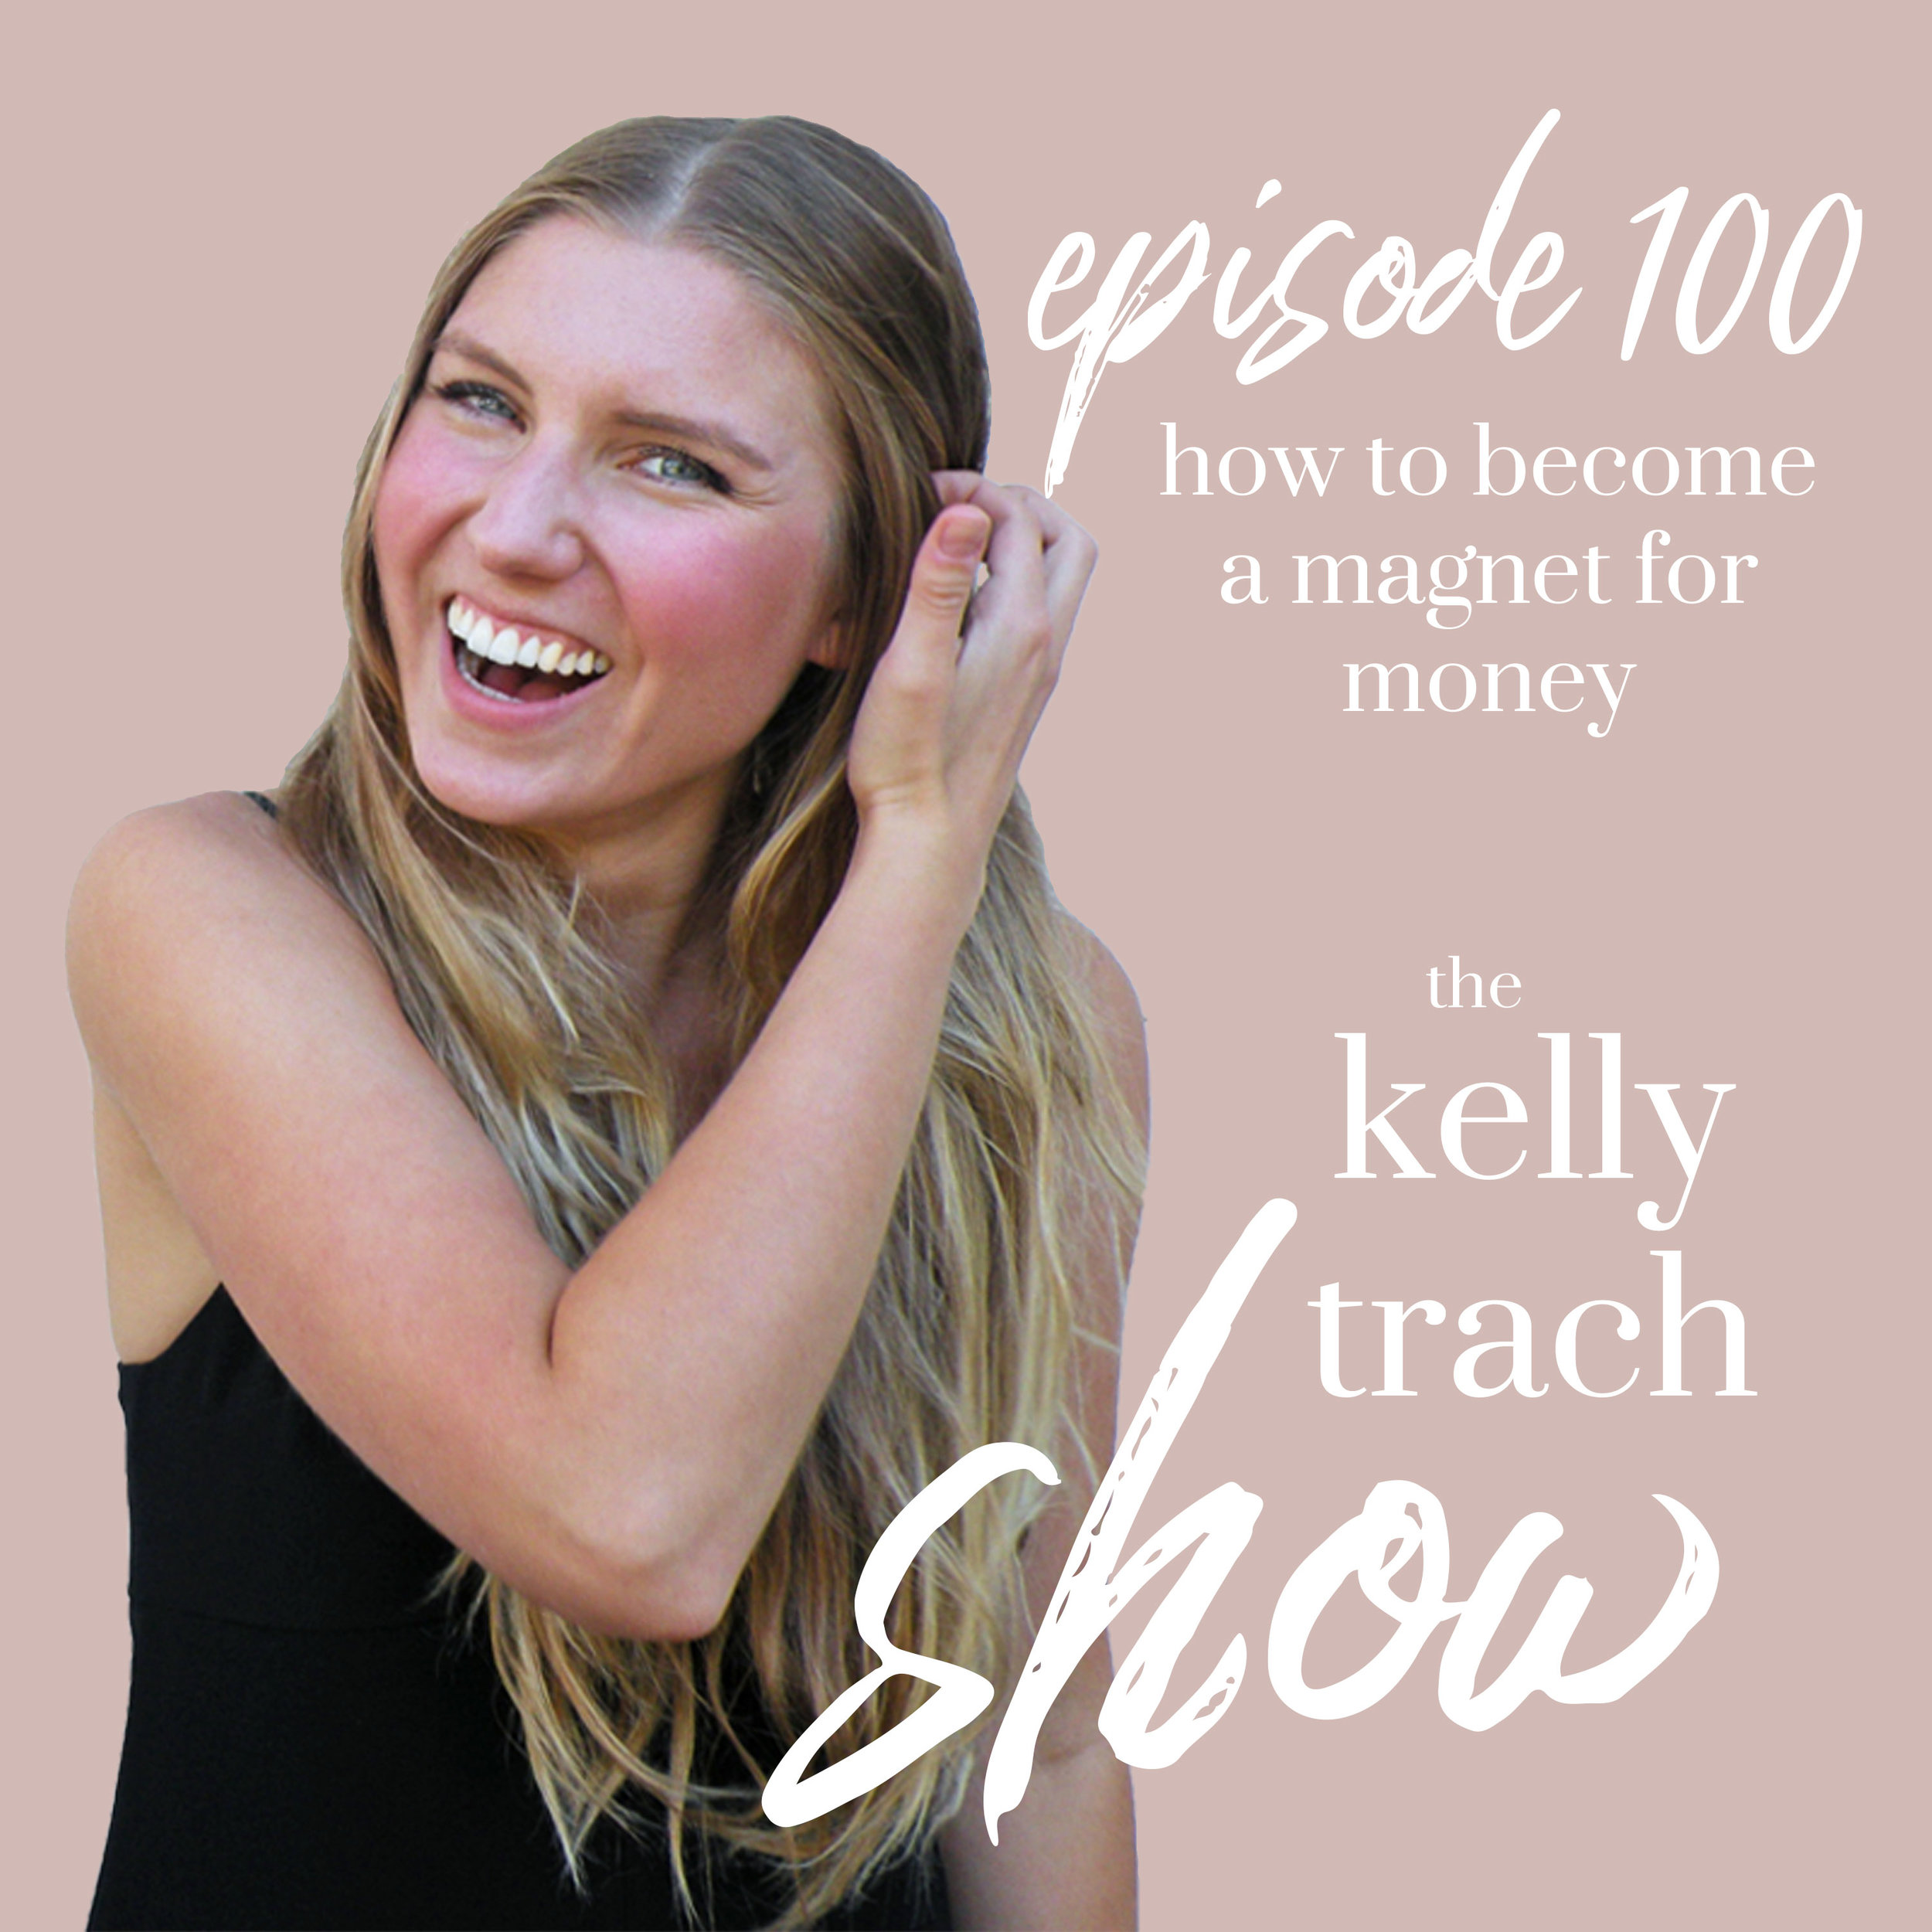 100 How To Become A Magnet For Money The Kelly Trach Show Podcast.jpg